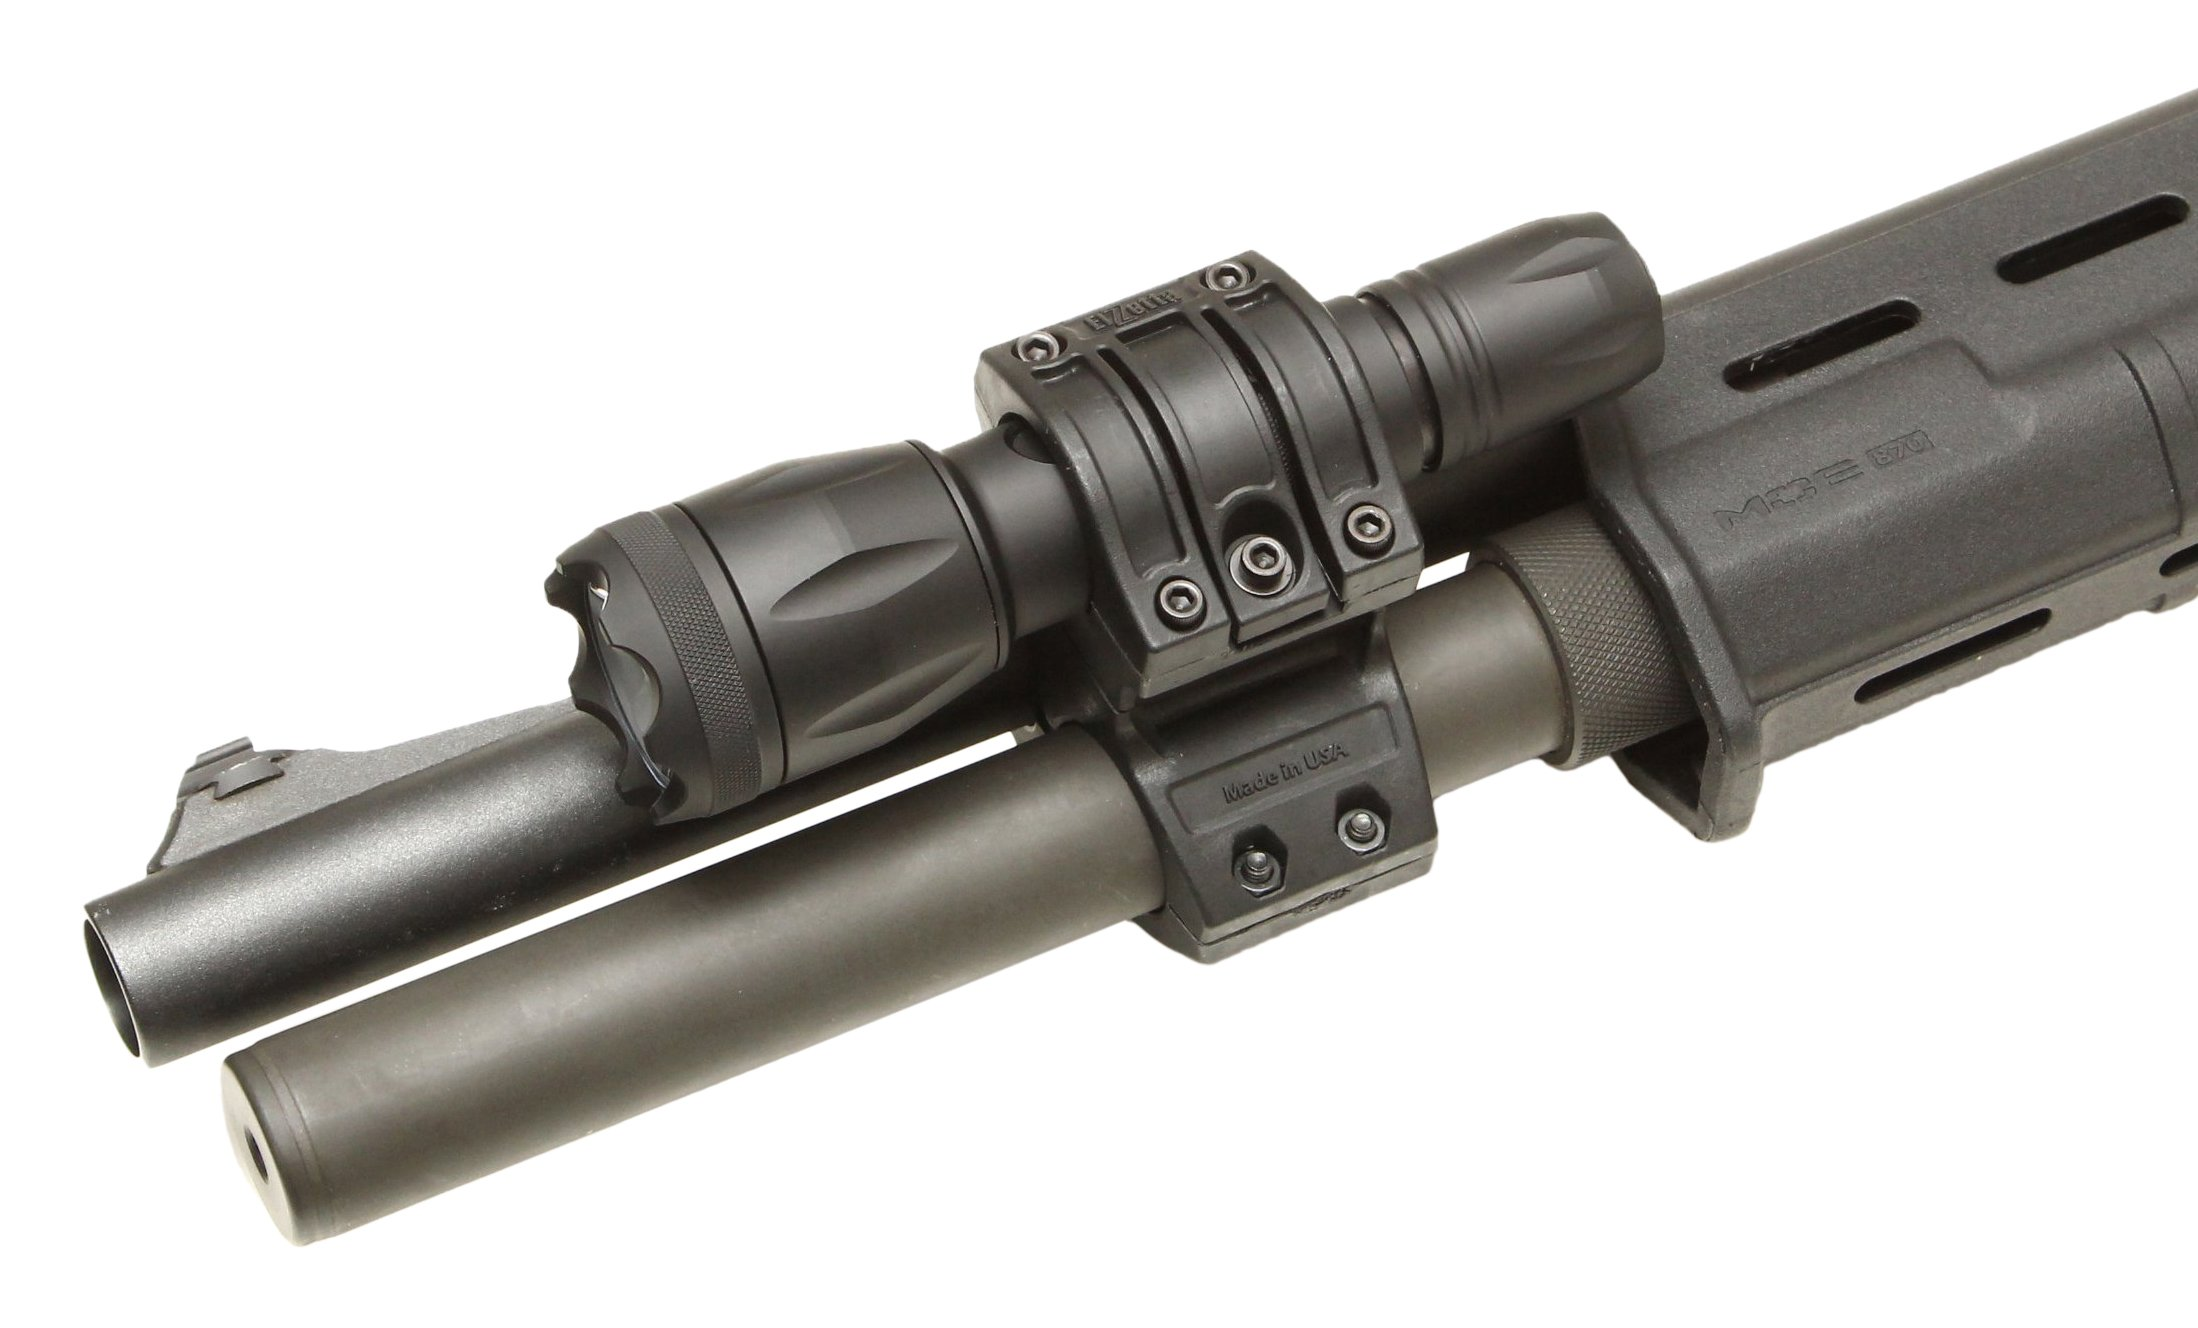 Elzetta ZSM-T Flashlight Mount for Tactical Shotgun, Remington 870, Mossberg 500, Quick Release Thumbscrew Model by Elzetta